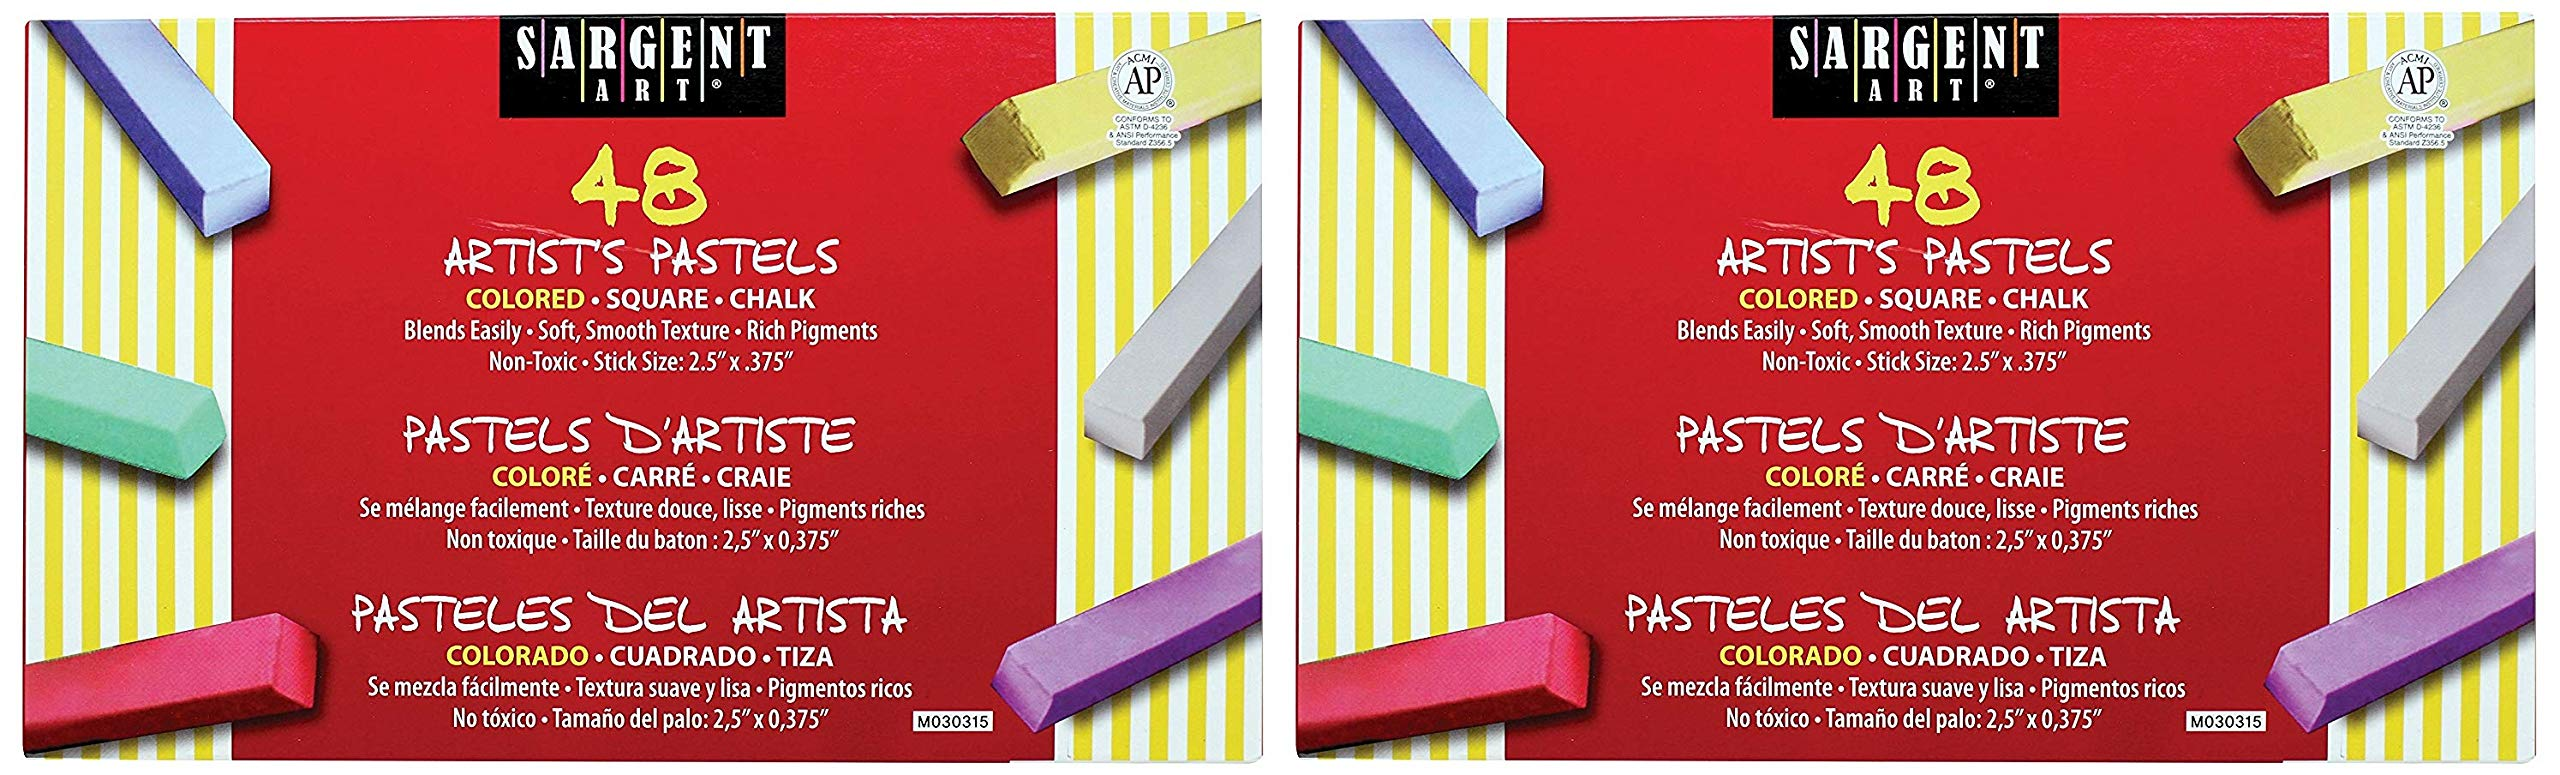 Sargent Art 22-4148 Colored Square Chalk Pastels (2 X Pack of 48)